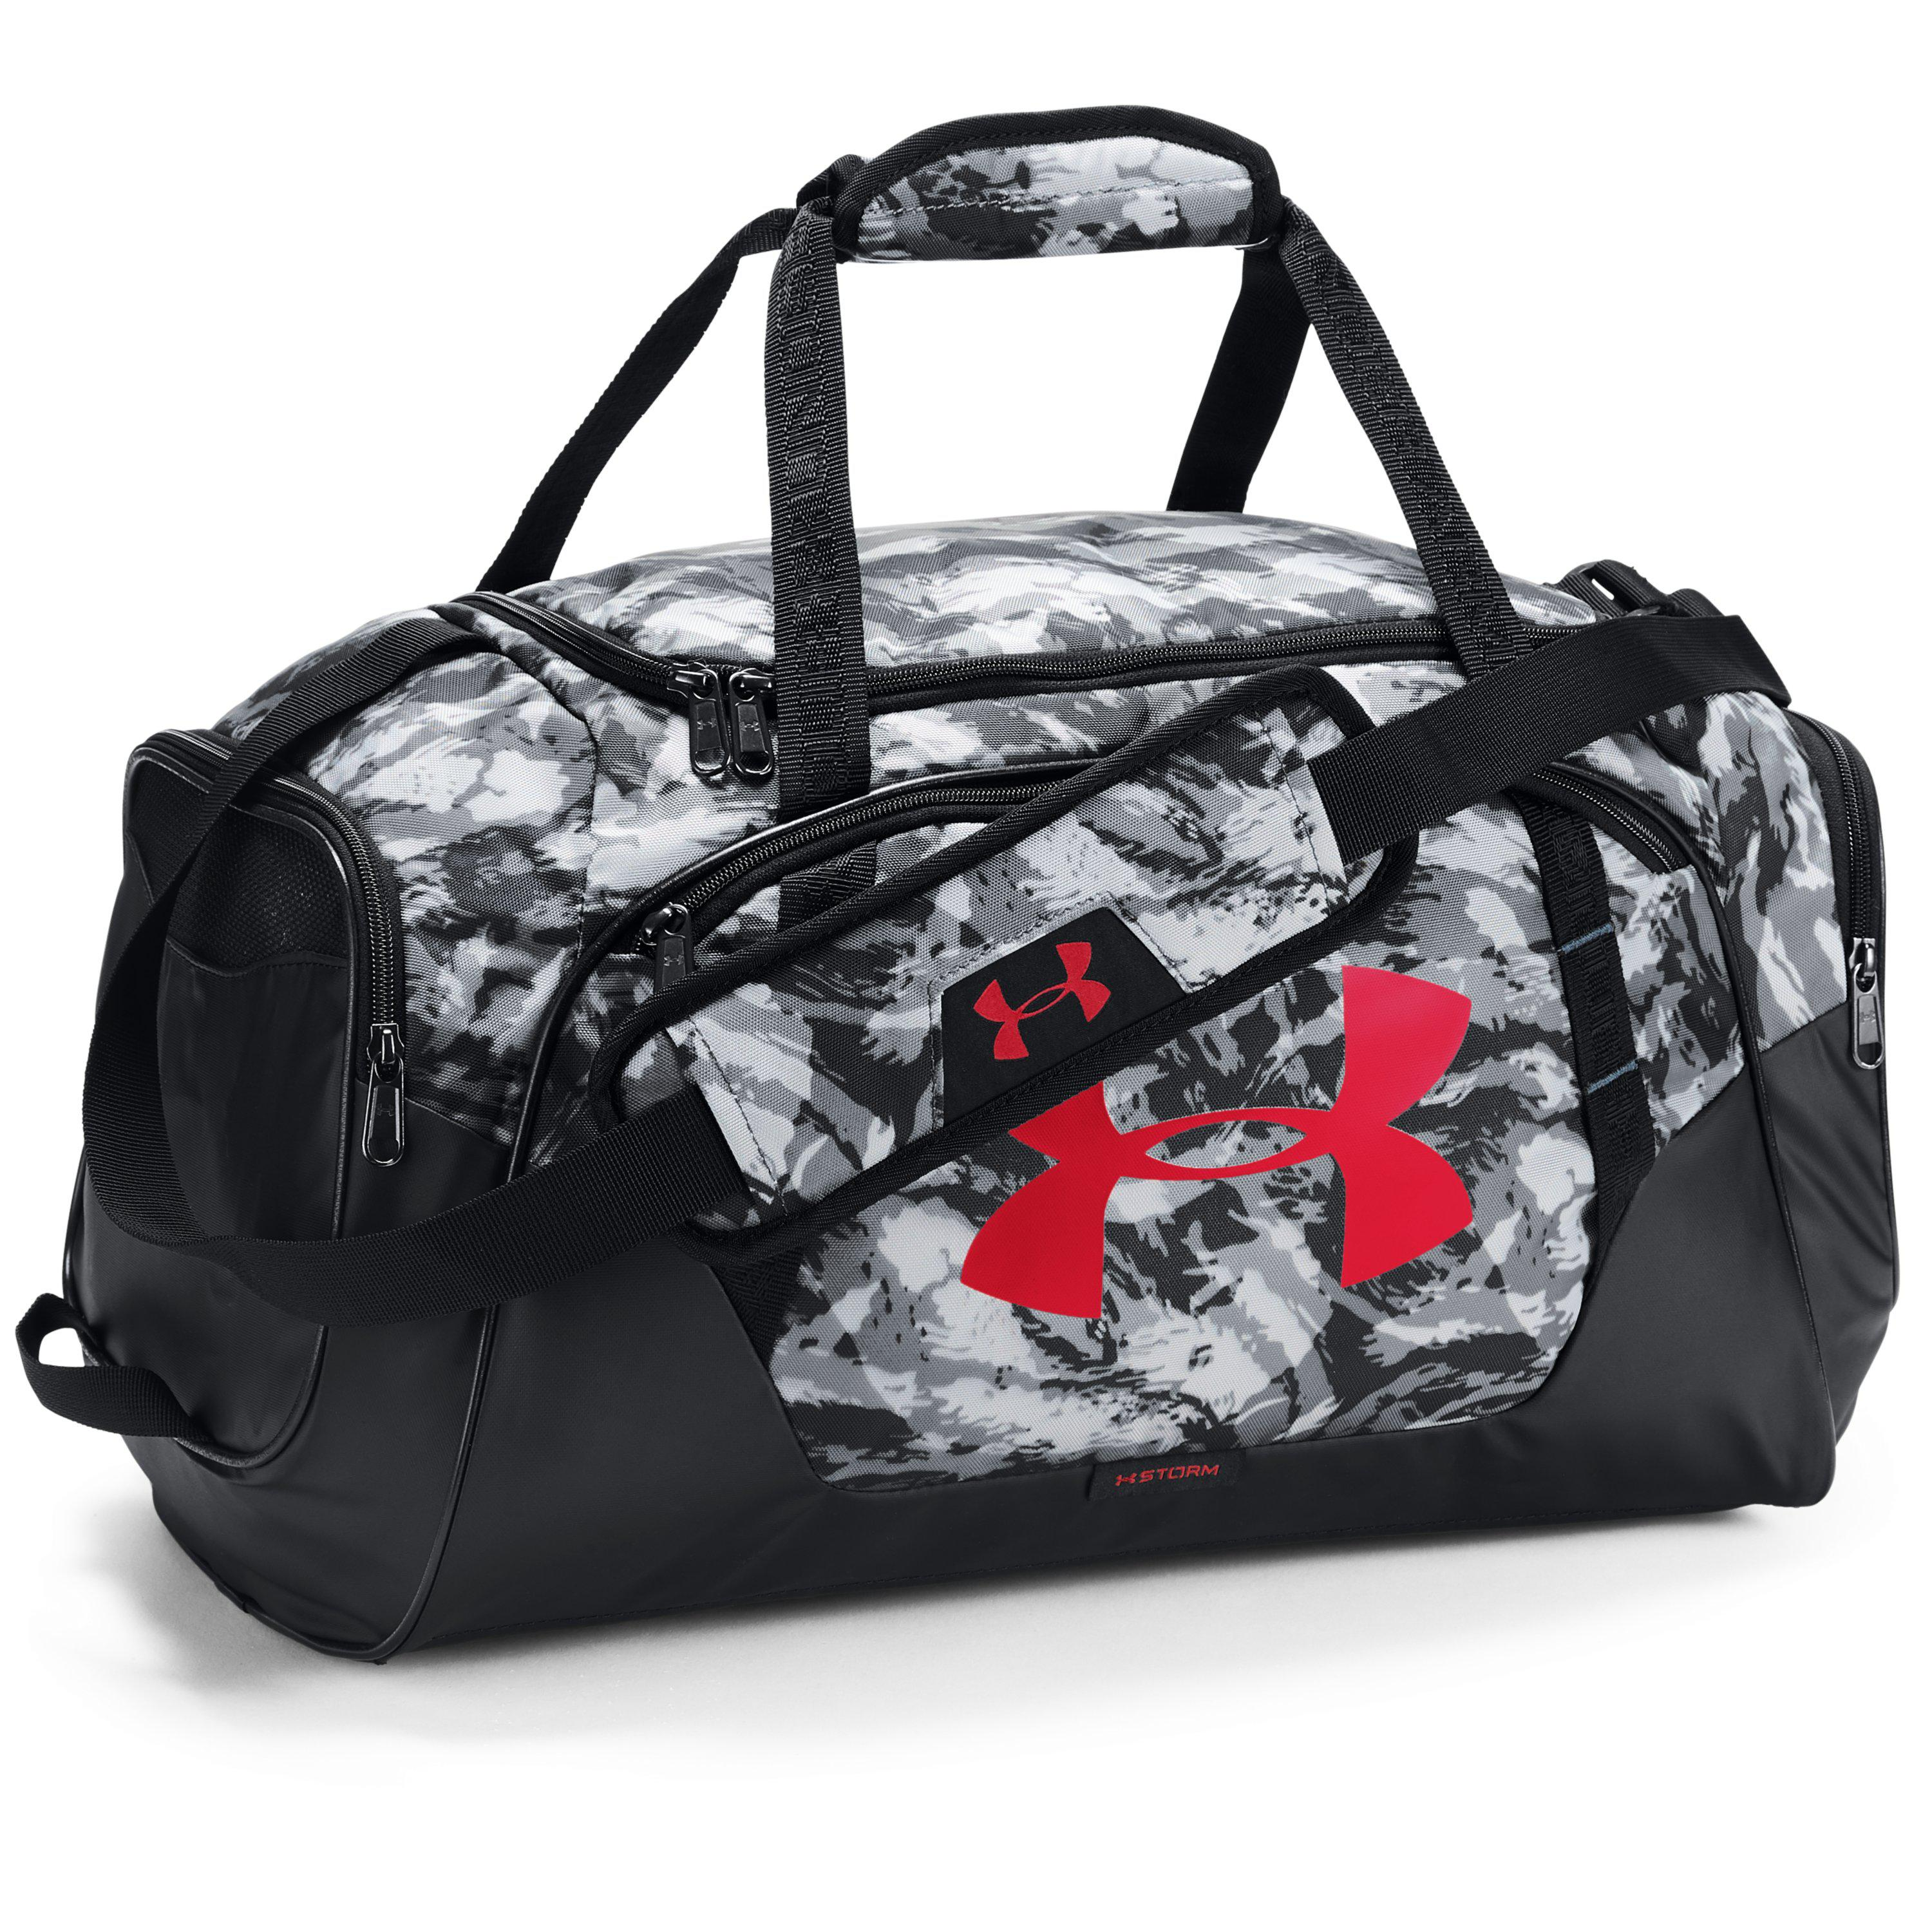 fb507d5e7088 Lyst - Under Armour Undeniable 3.0 Small Duffle Bag in Black for Men